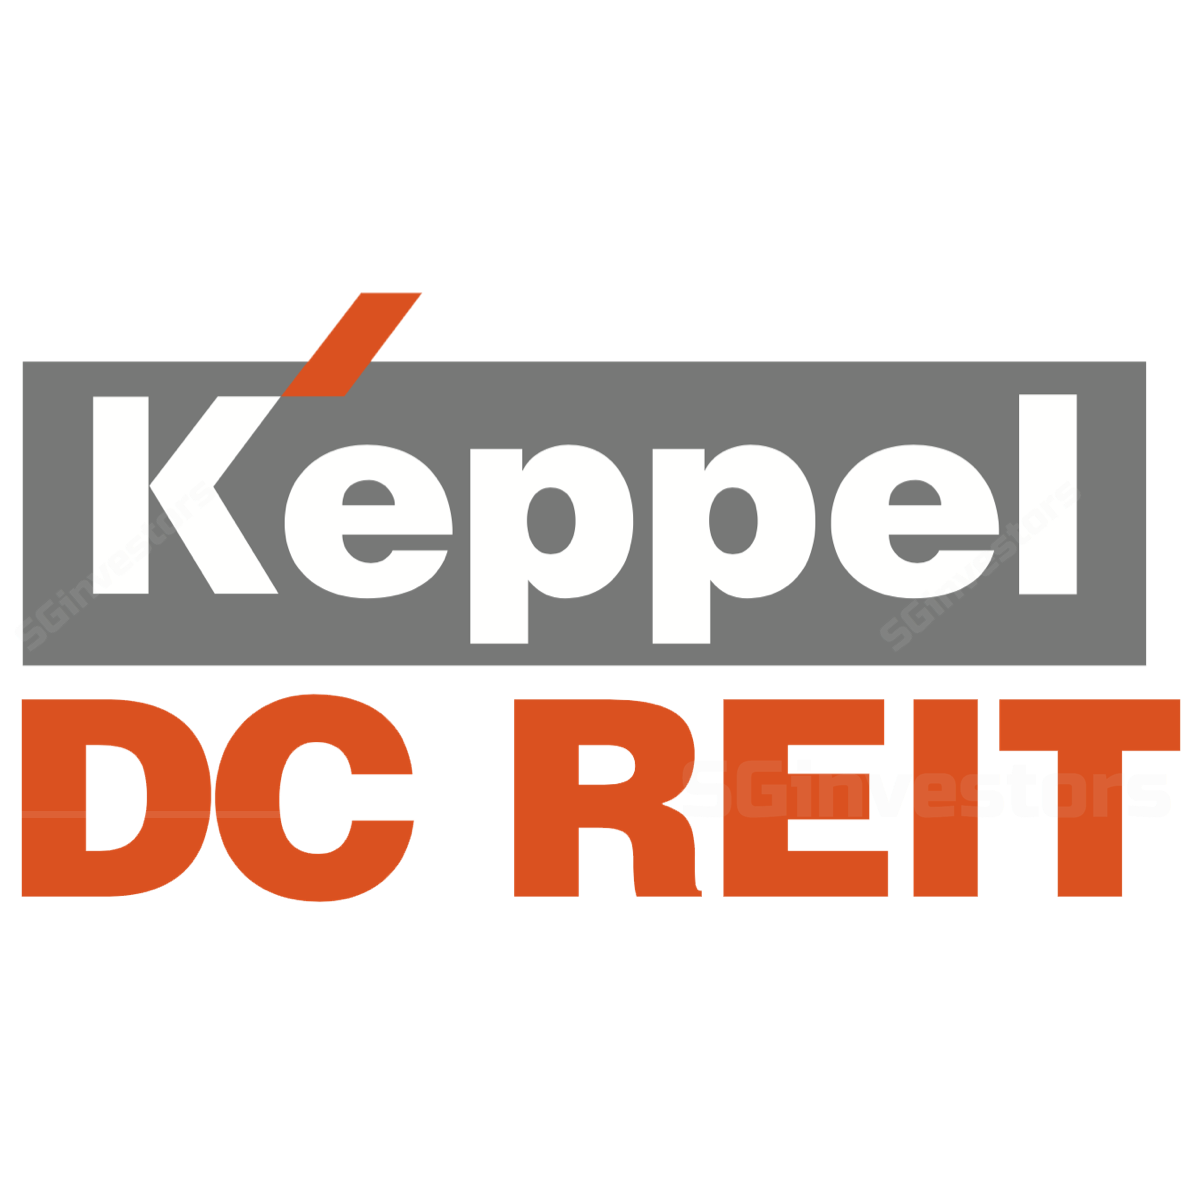 Keppel DC REIT - CIMB Research 2018-01-22: 4Q17 On Track For S$2bn AUM In 2018